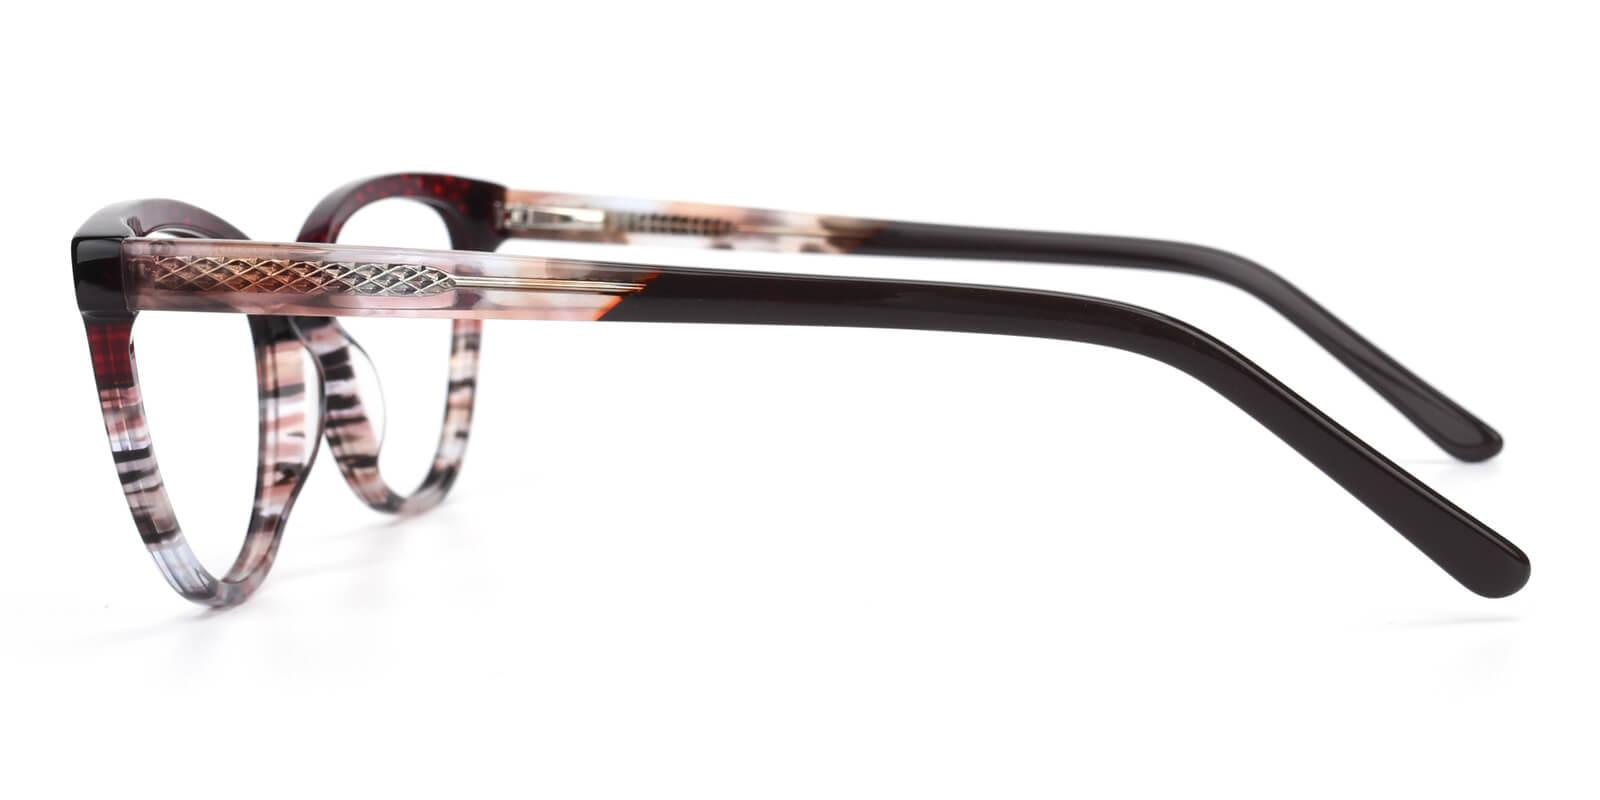 Daphnely-Red-Oval / Cat-Acetate-Eyeglasses-additional3